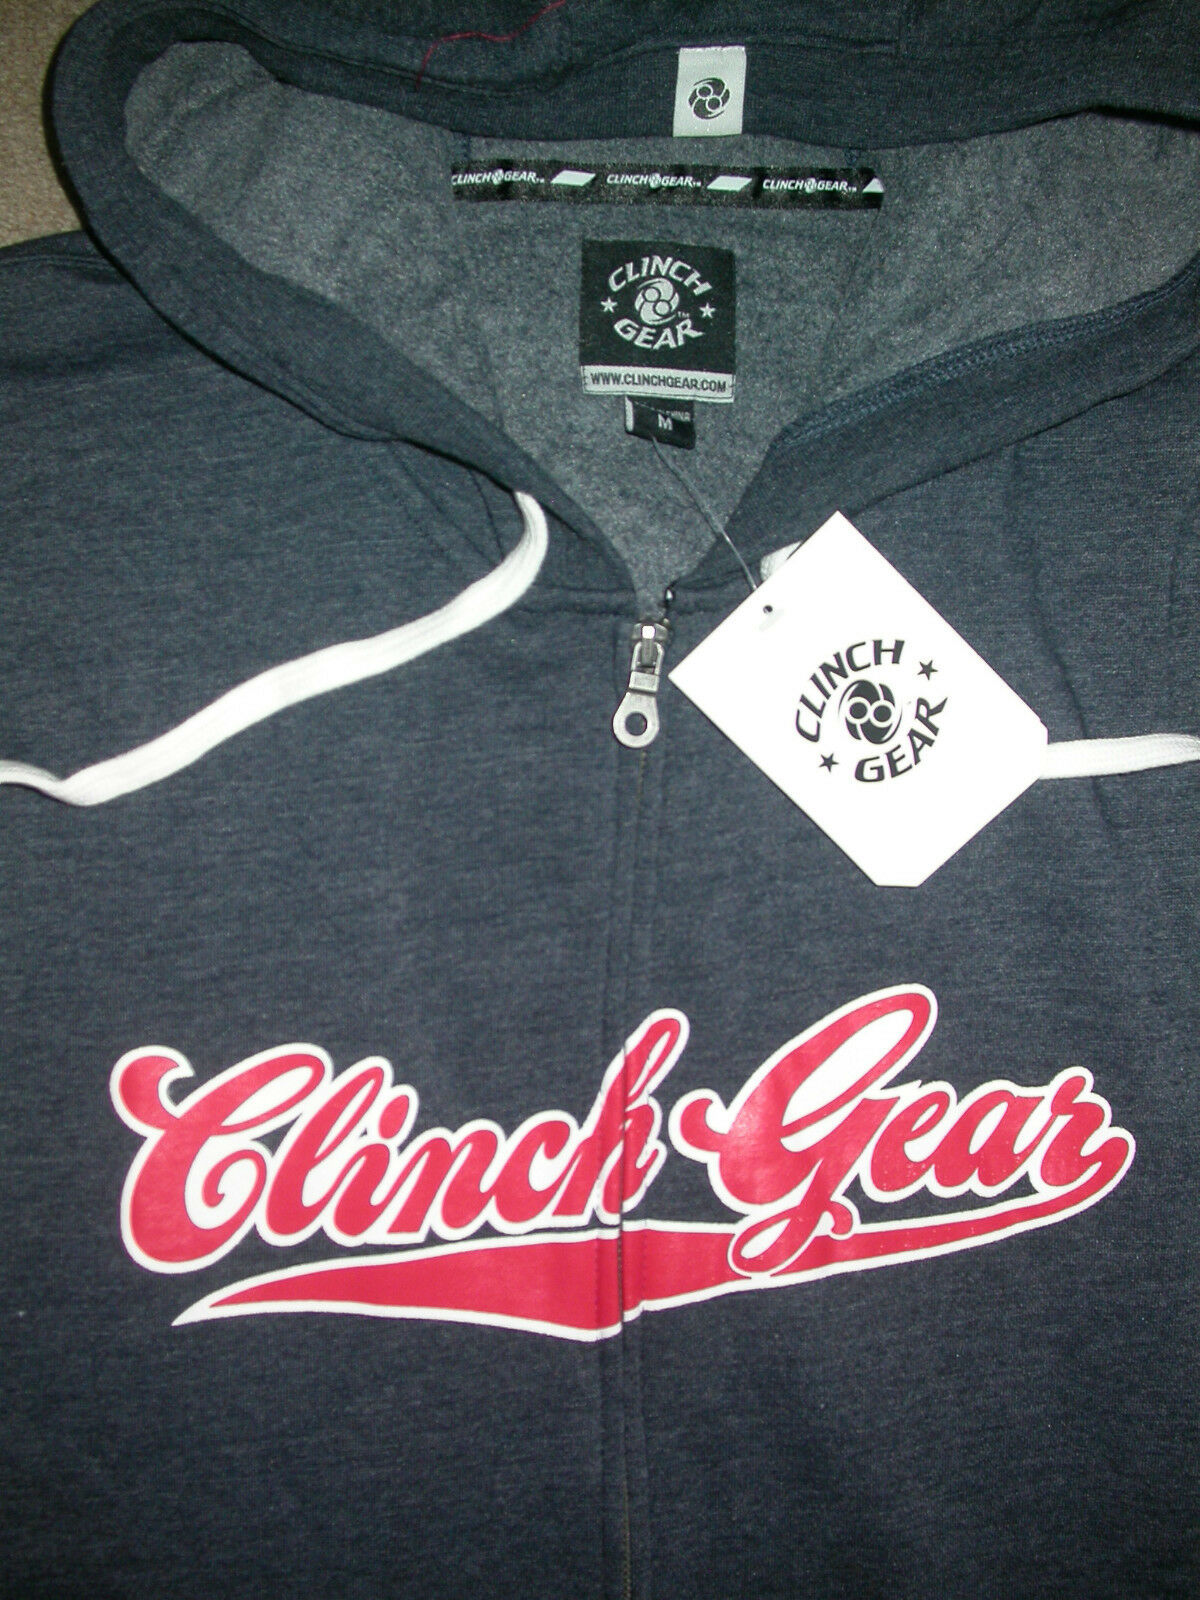 CLINCH GEAR ZIP UP HOODED SWEATSHIRT LARGE  UFC KSW MMA BJJ WRESTLING BOXING NEW